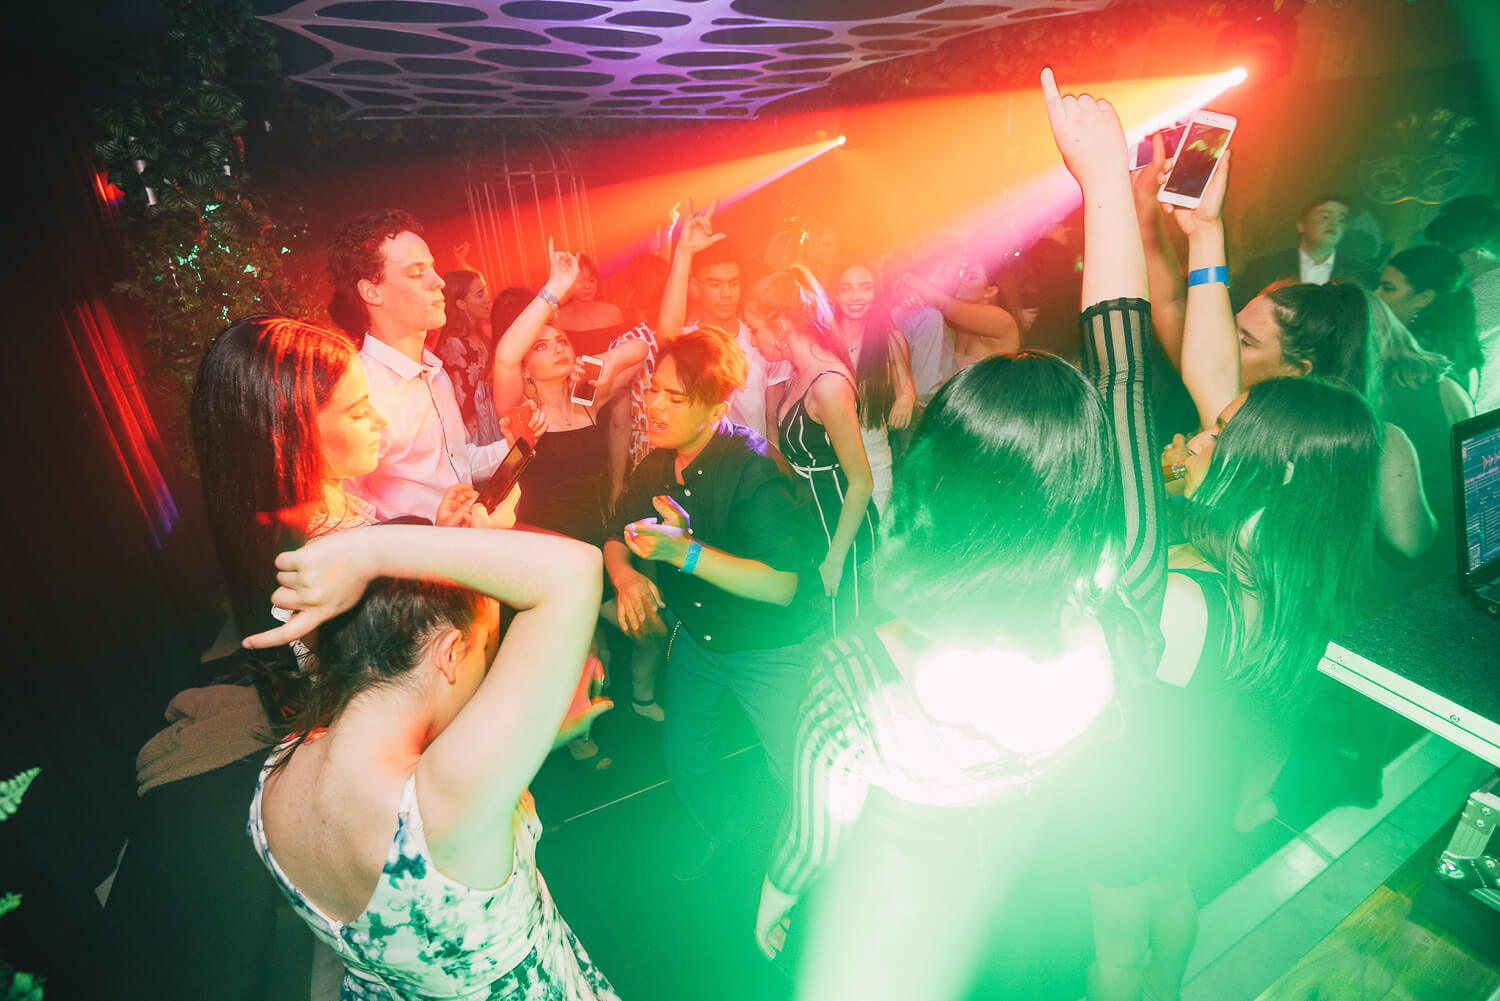 Red and Green lasers in a jungle party melbourne available for hire